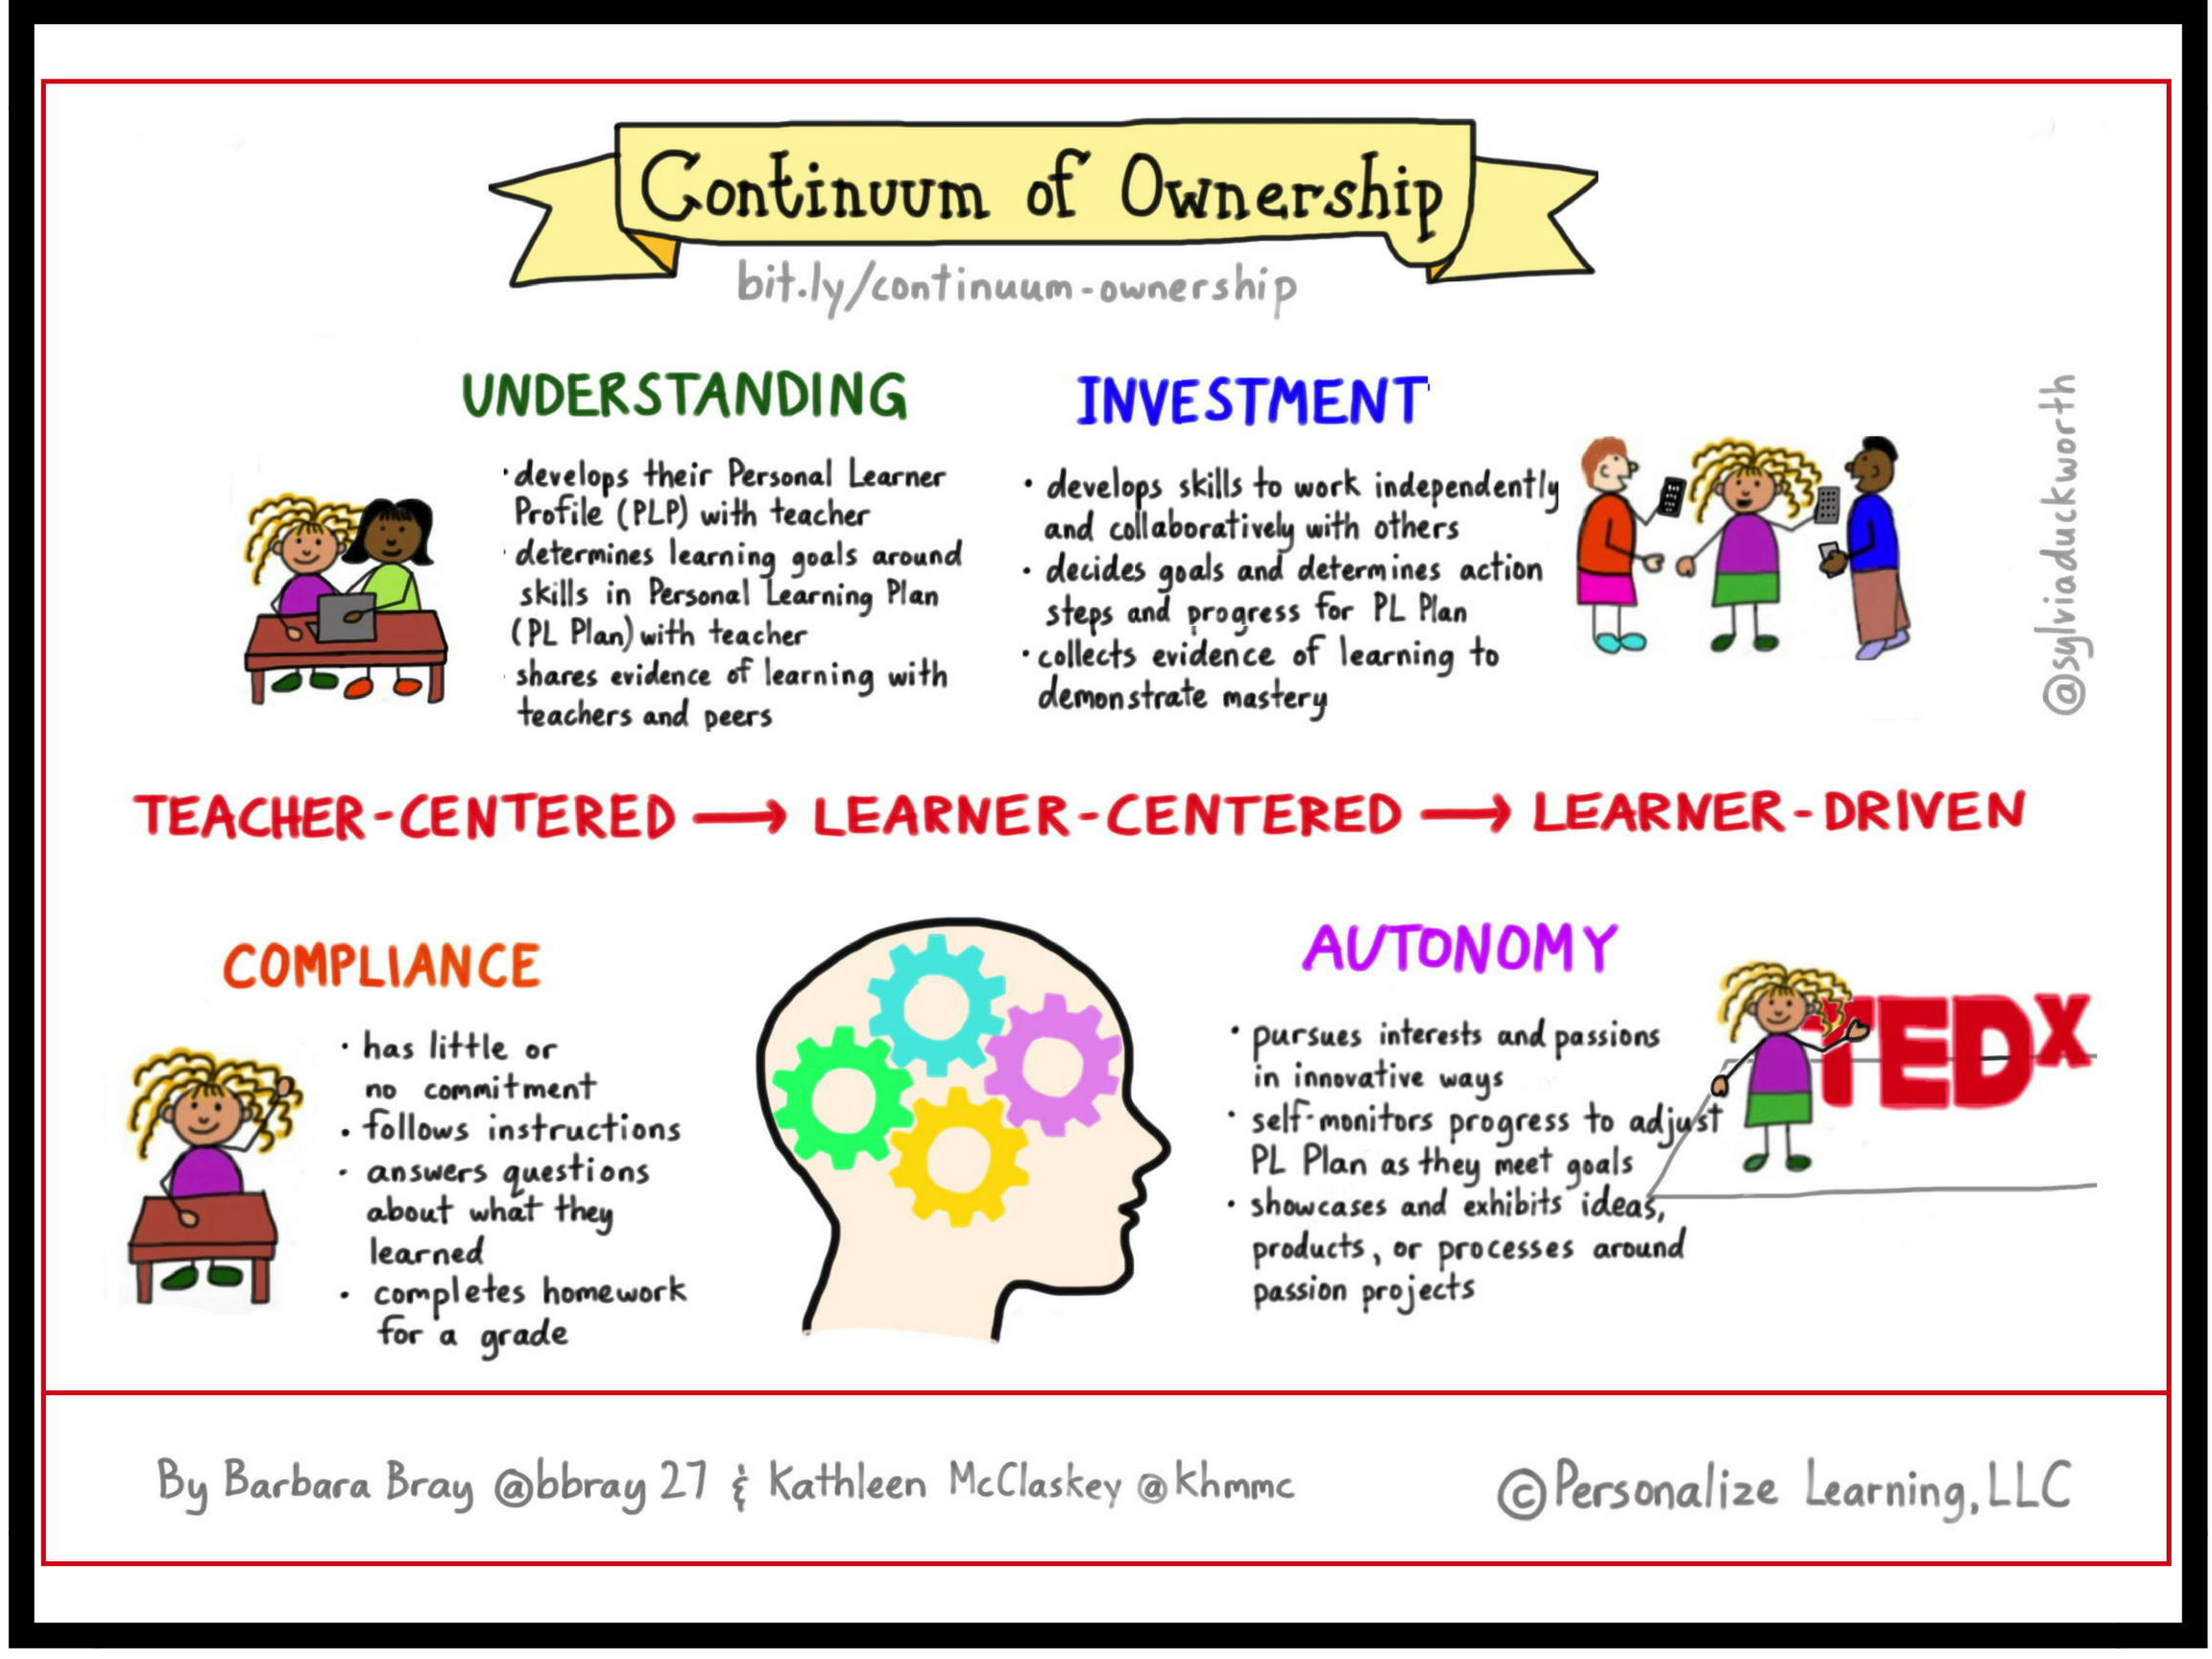 Ownership Make Learning Personal